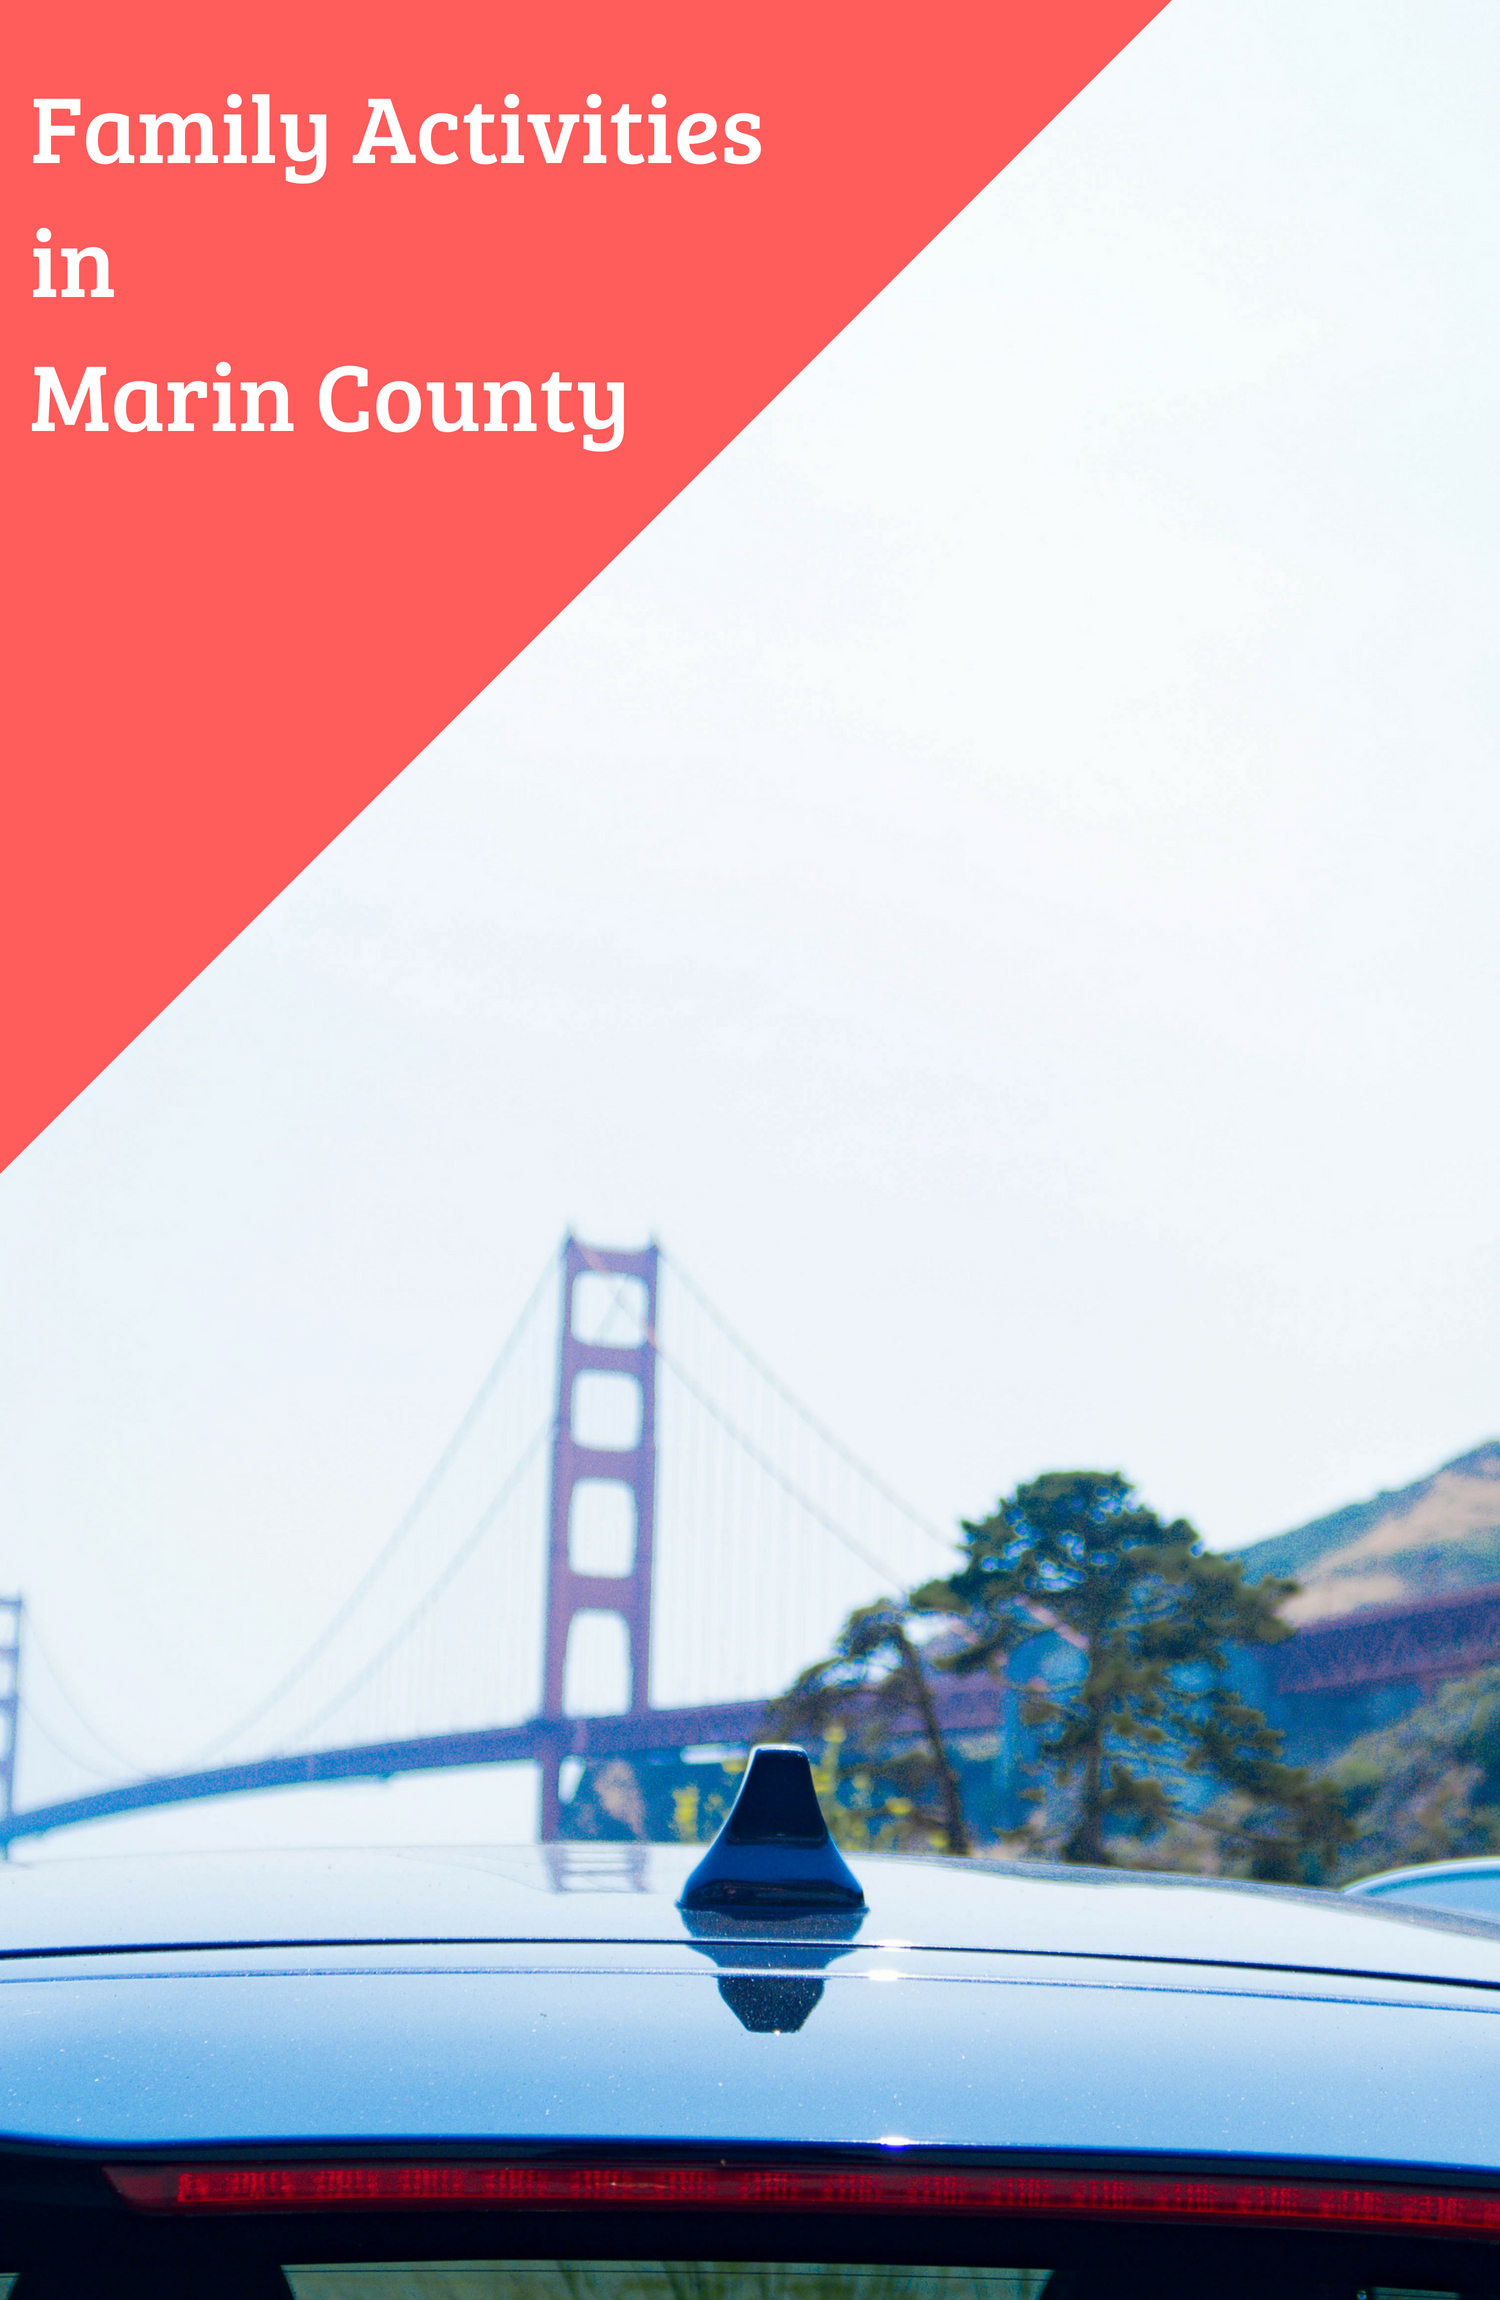 Planning a trip to Marin County? We're sharing our favorite family activities!